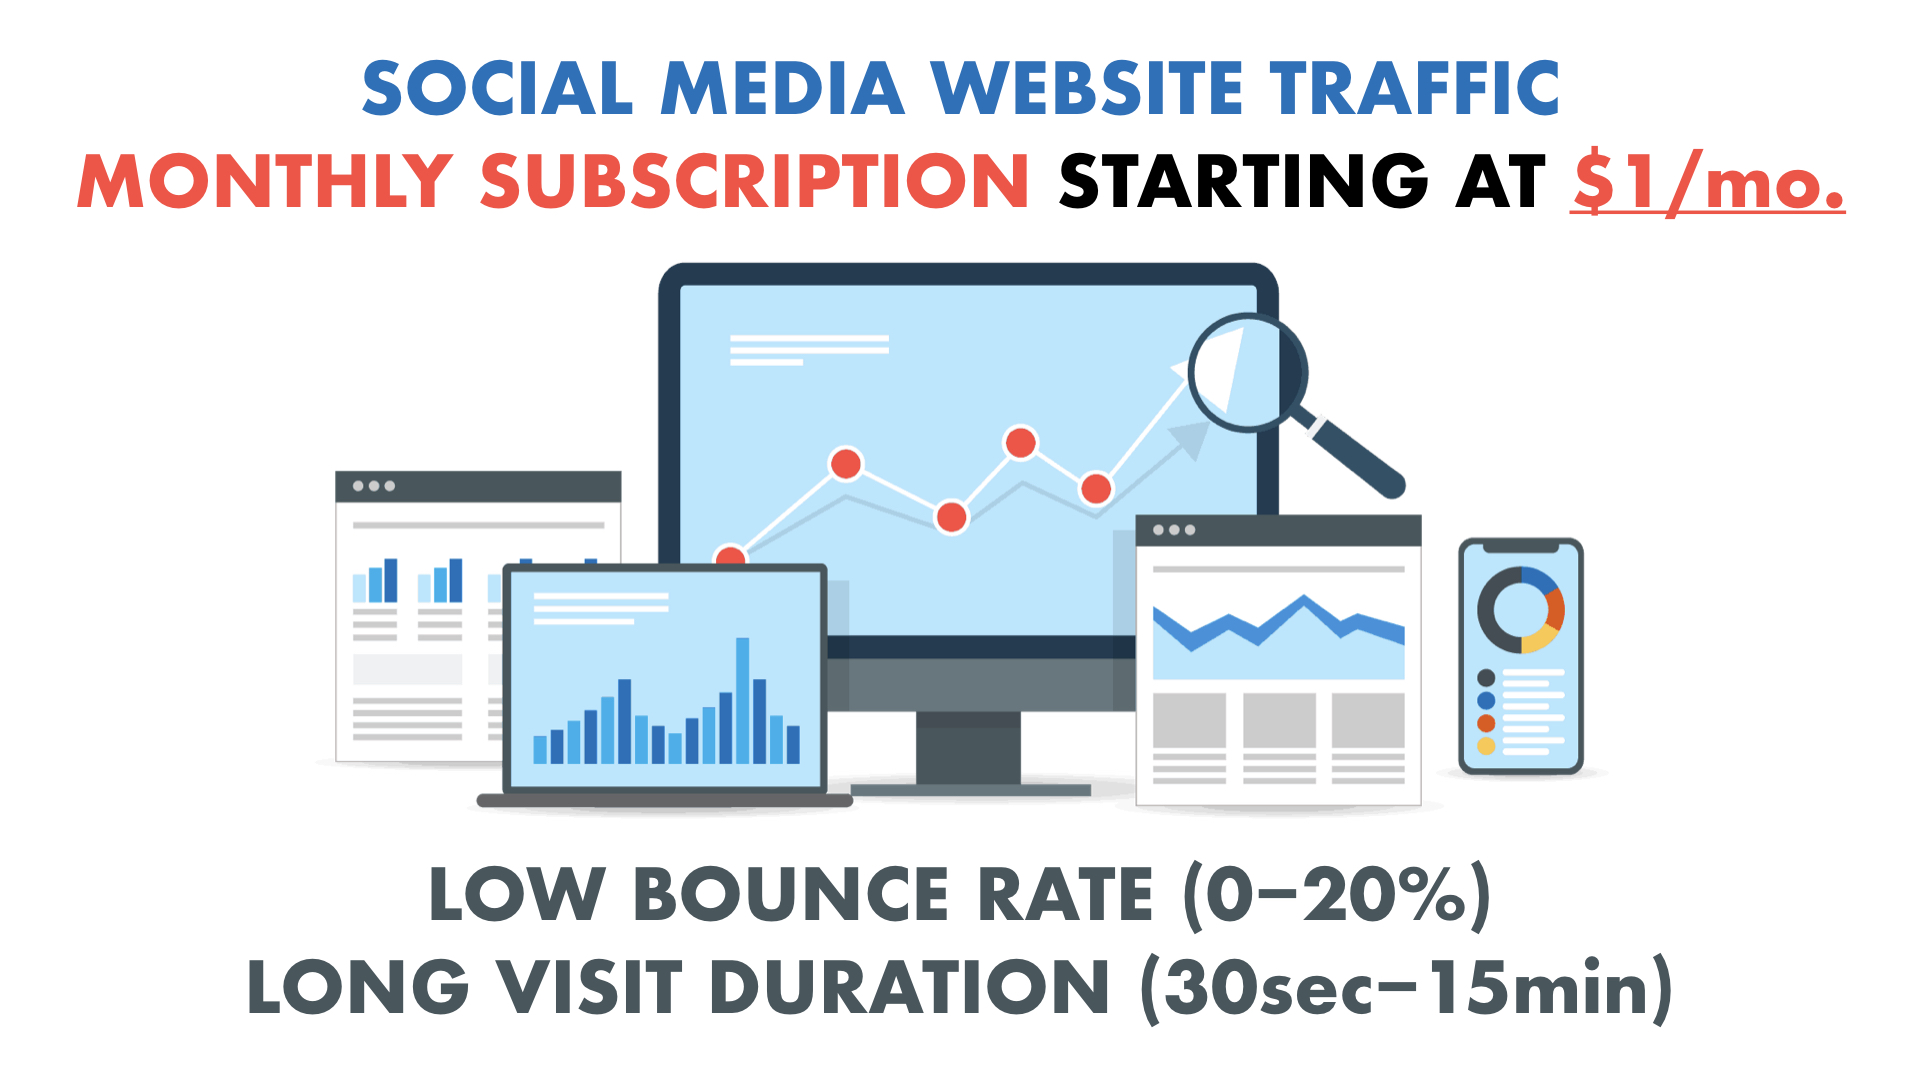 UNLIMITED SOCIAL MEDIA Traffic with Low Bounce rate and Long Visit Duration